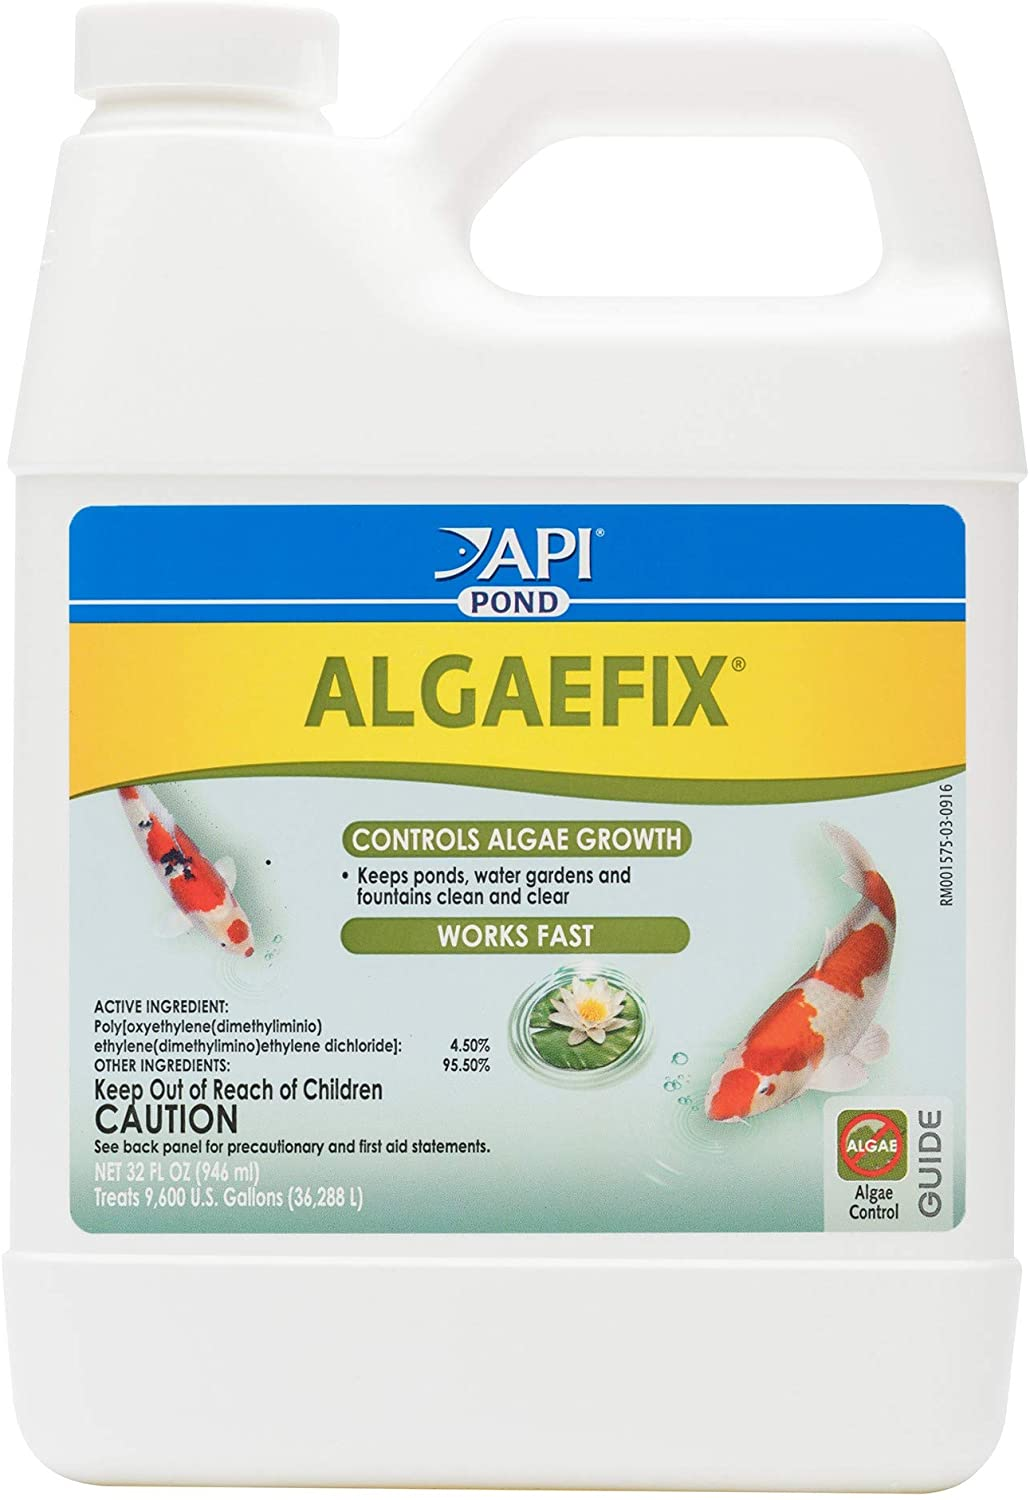 API POND ALGAEFIX Algae control, Effectively controls Green water algae, String or Hair algae and Blanketweed, Use as directed when algae blooms and as regular care